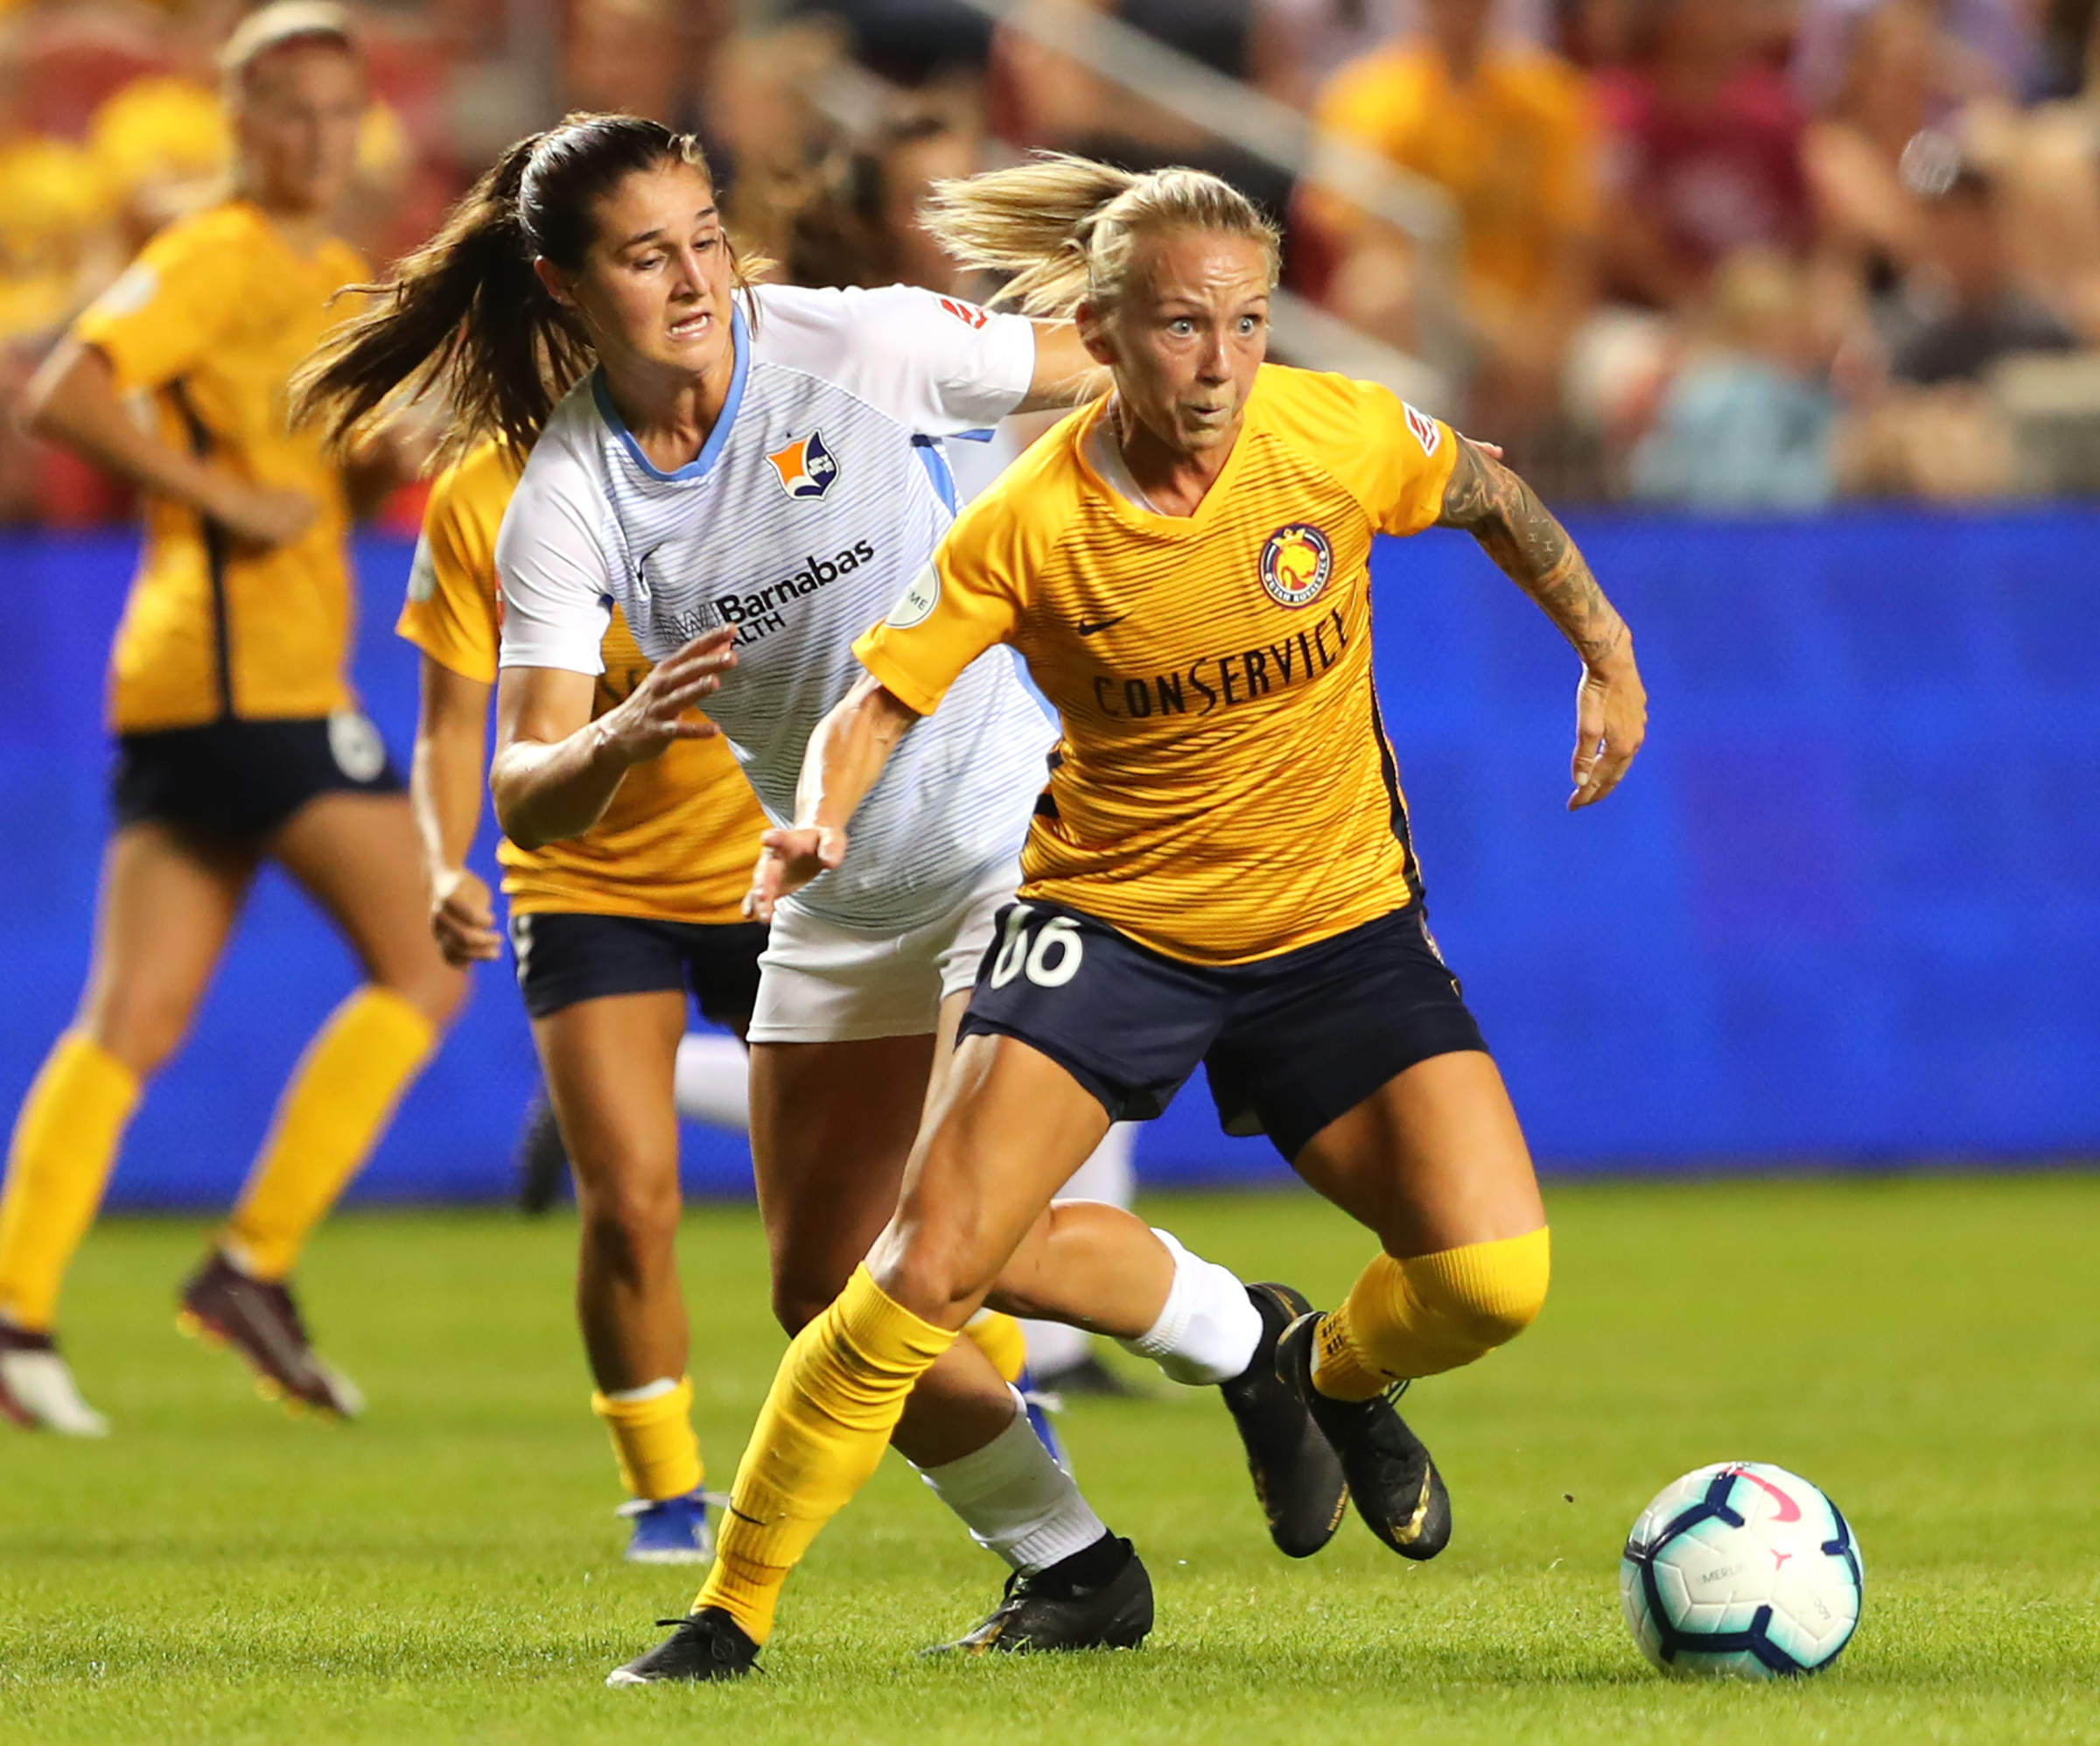 Utah Royals FC midfielder Gunnhildur Jónsdóttir (66) gets away from Sky Blue FC midfielder Julie James (5) as the Salt Lake Royals and Sky Blue FC play at Rio Tinto Stadium in Sandy on Wednesday, Aug. 7, 2019. The Royals won 3-0.